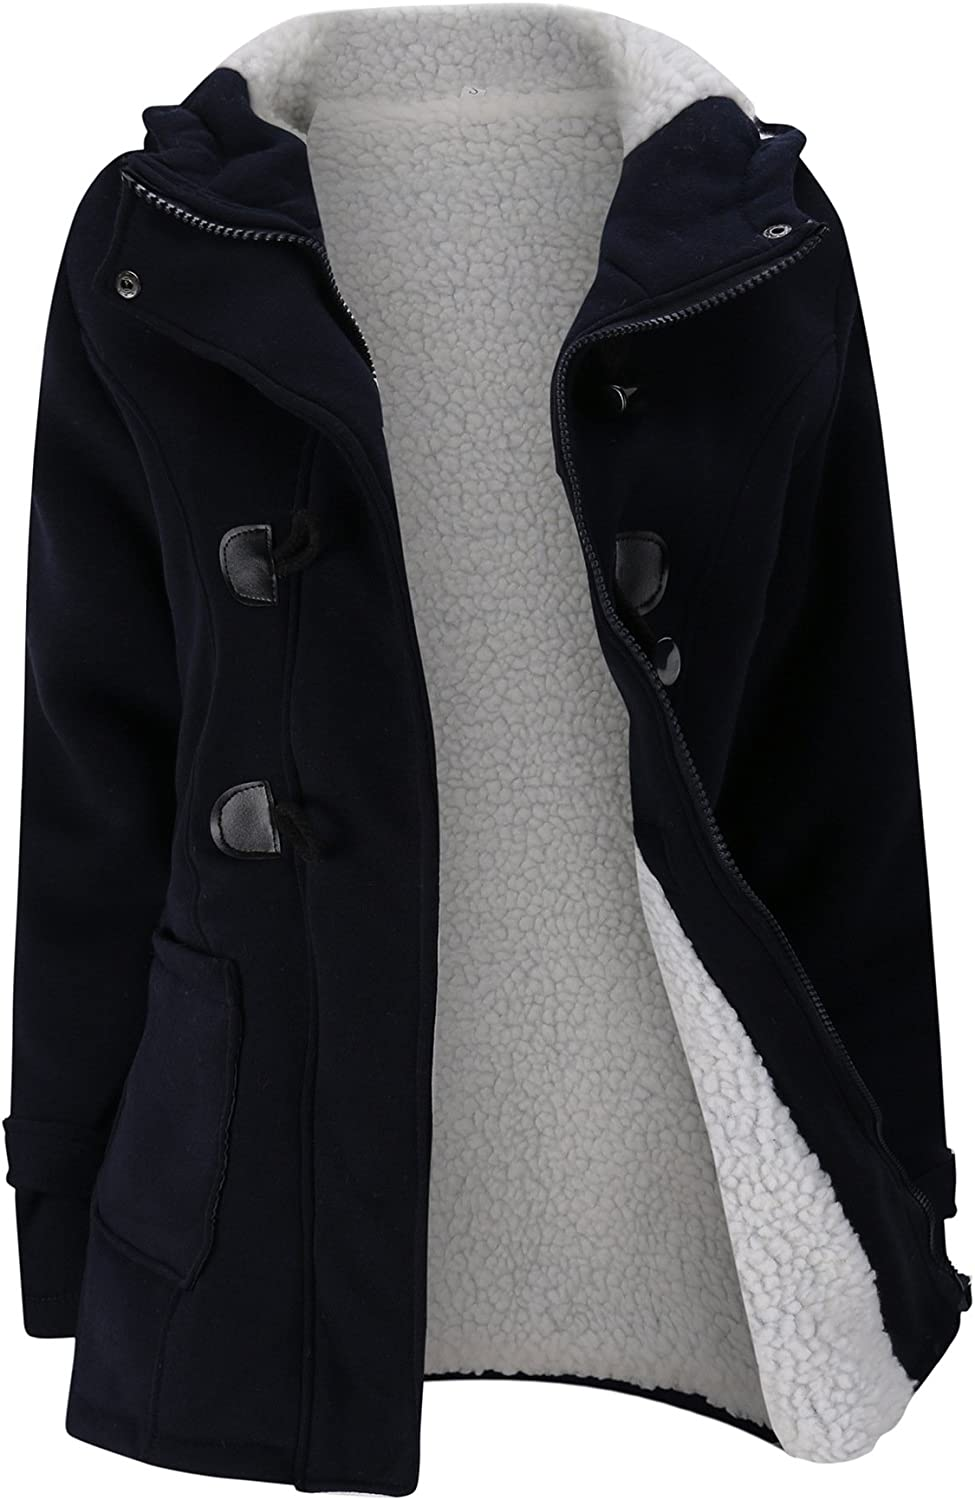 Annystore Womens Duffle Toggle Coat Long Wool Blended Hooded Pea Coat Jacket with Pockets